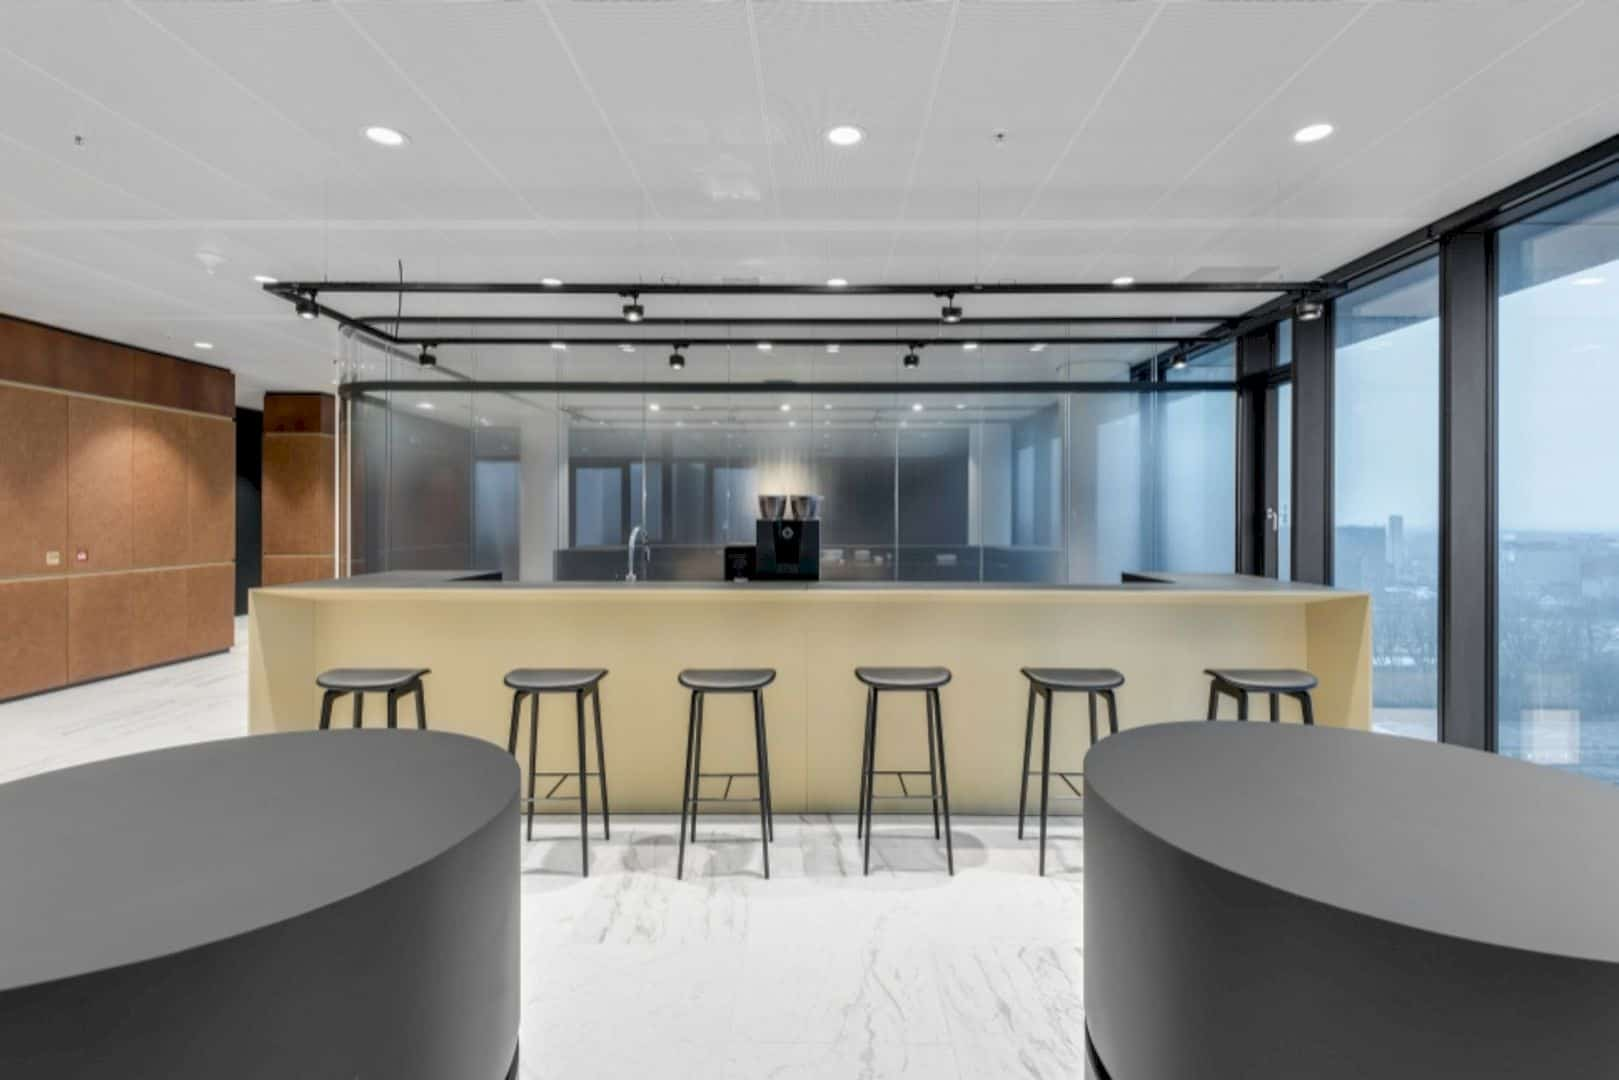 Cms Amsterdam A Warm Natural Base Office Design Merged With Curves And Transparency 4